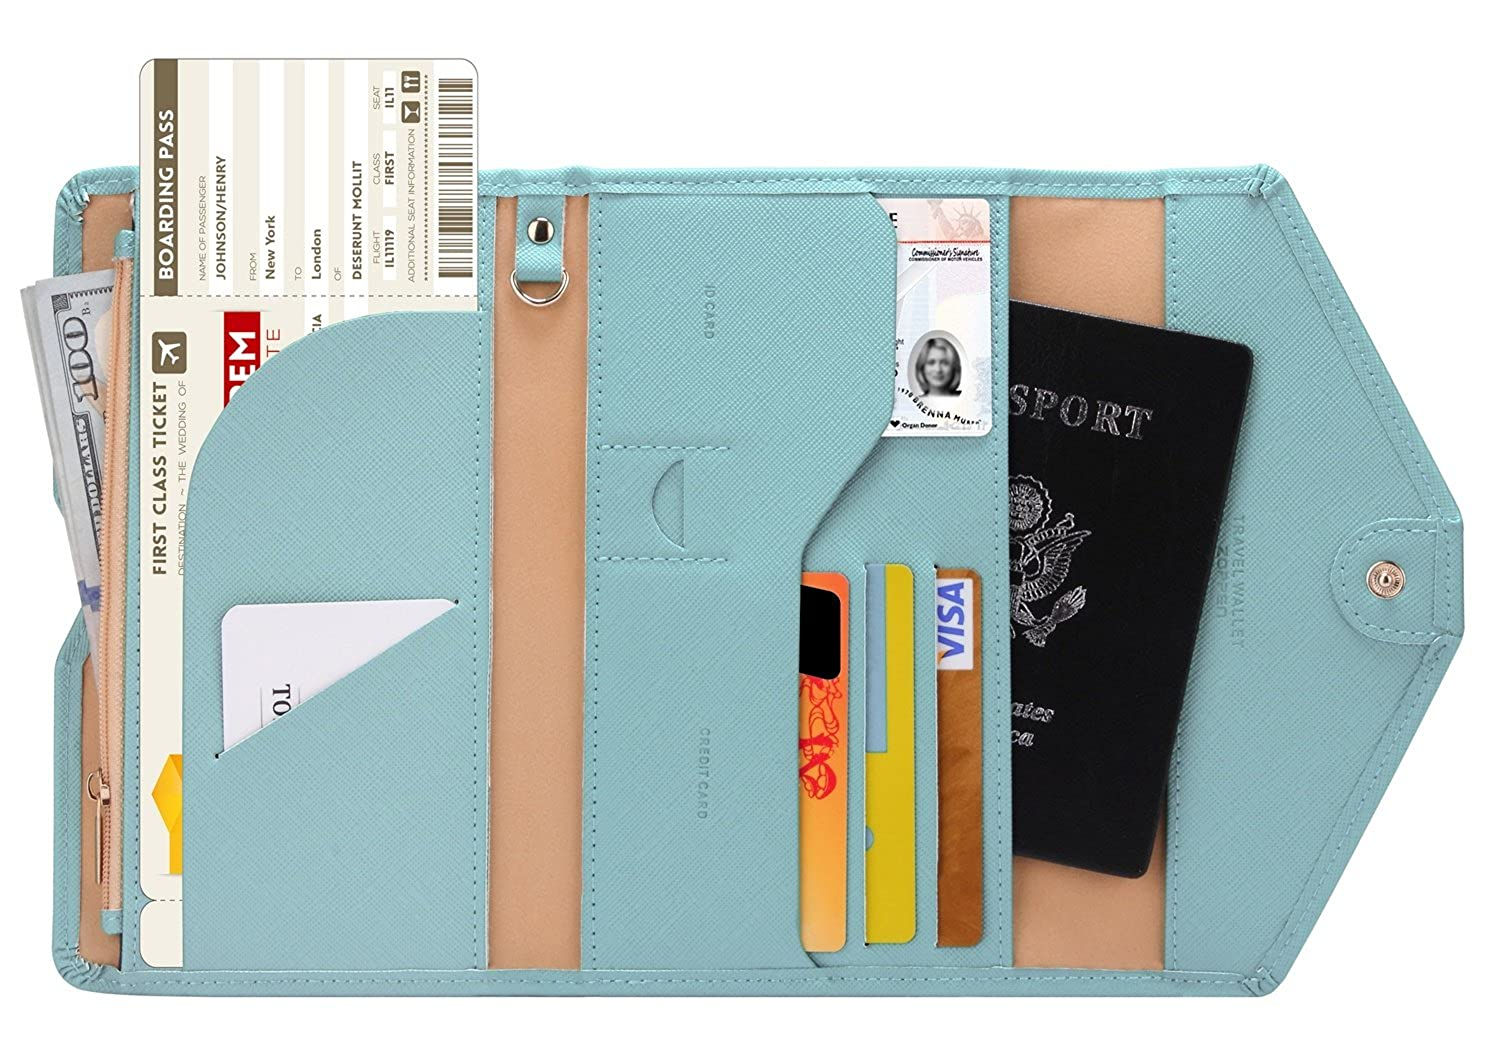 Ver.4 Tri-fold Document Organizer Holder 1 Black Travel Wallet Ver.4 Zoppen Multi-purpose Rfid Blocking Travel Passport Wallet